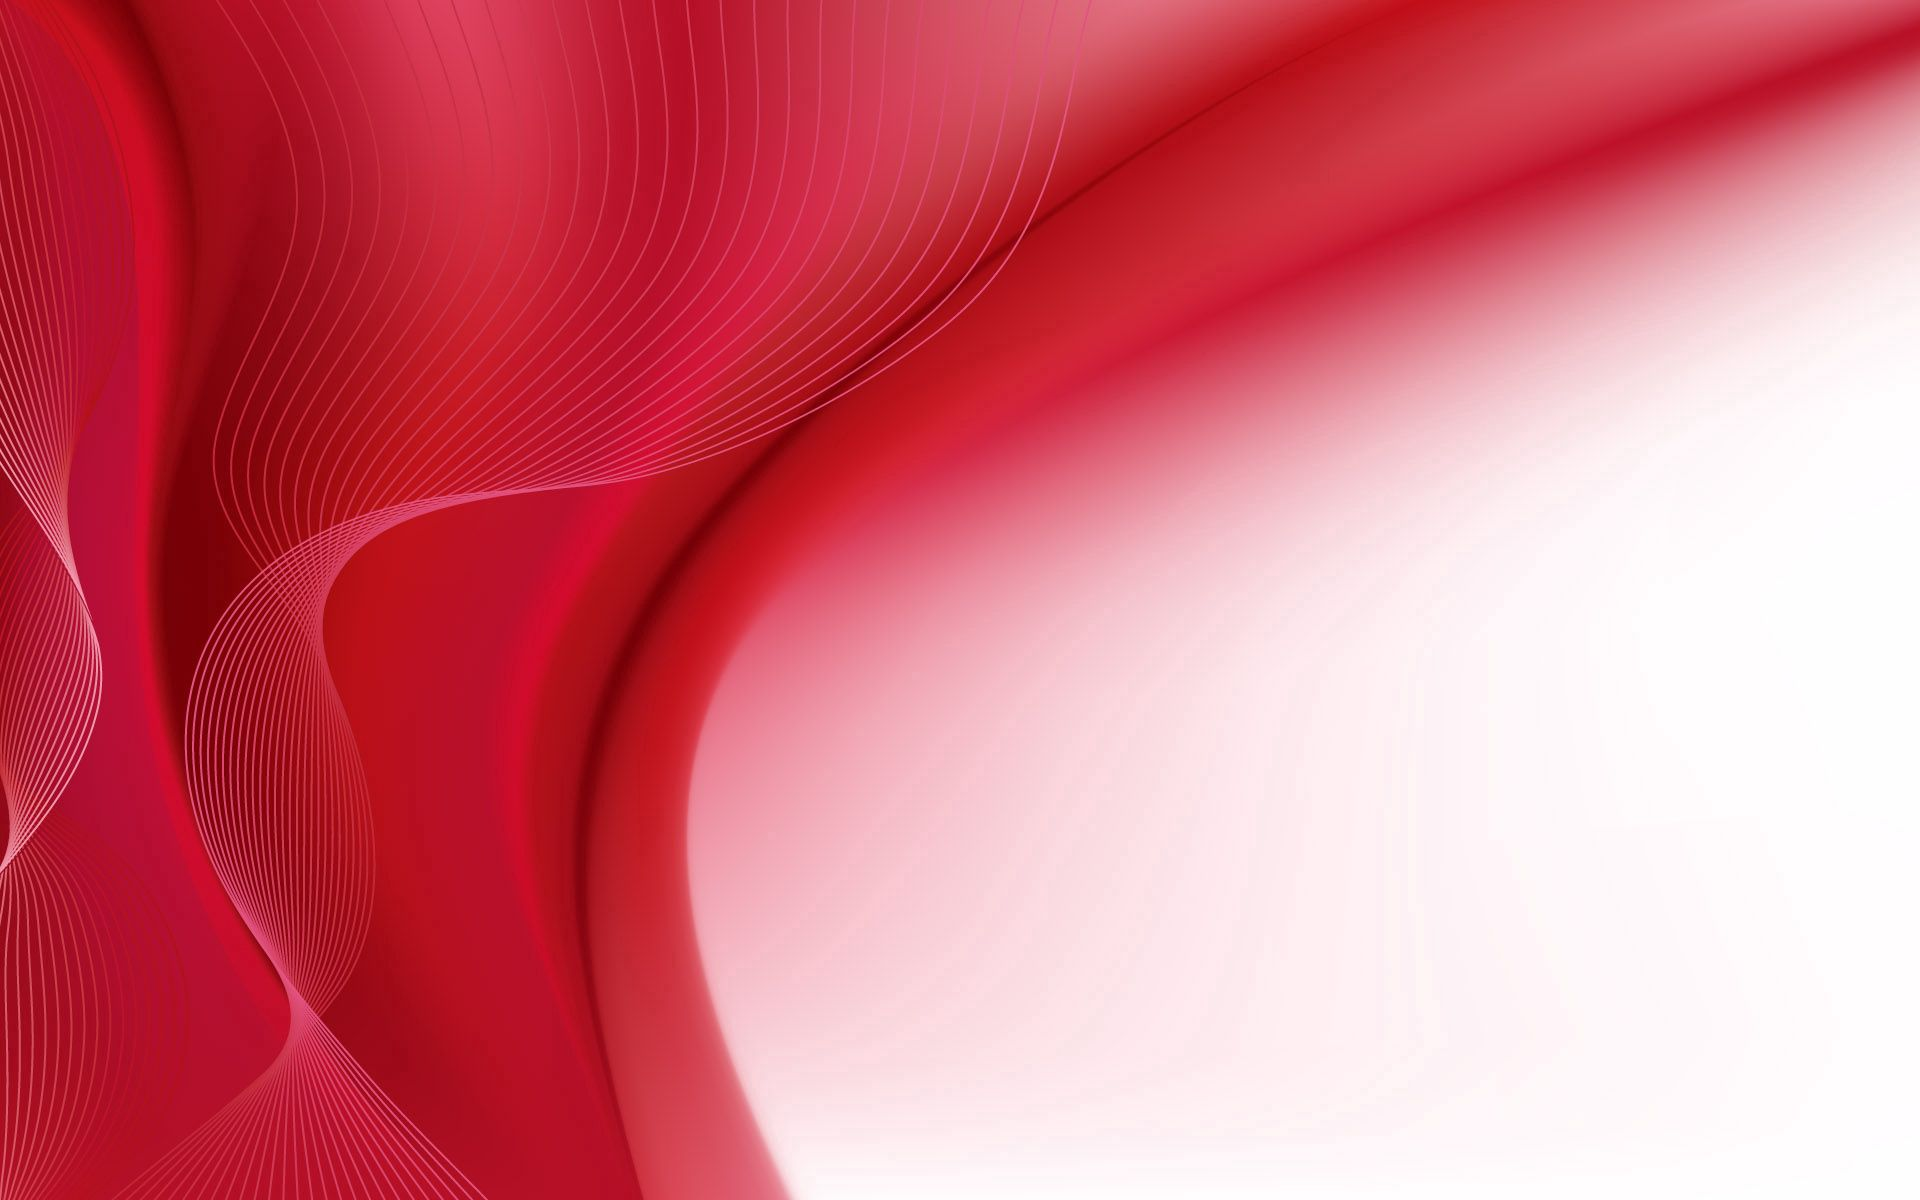 87511 download wallpaper Lines, Abstract, Background, Wave screensavers and pictures for free